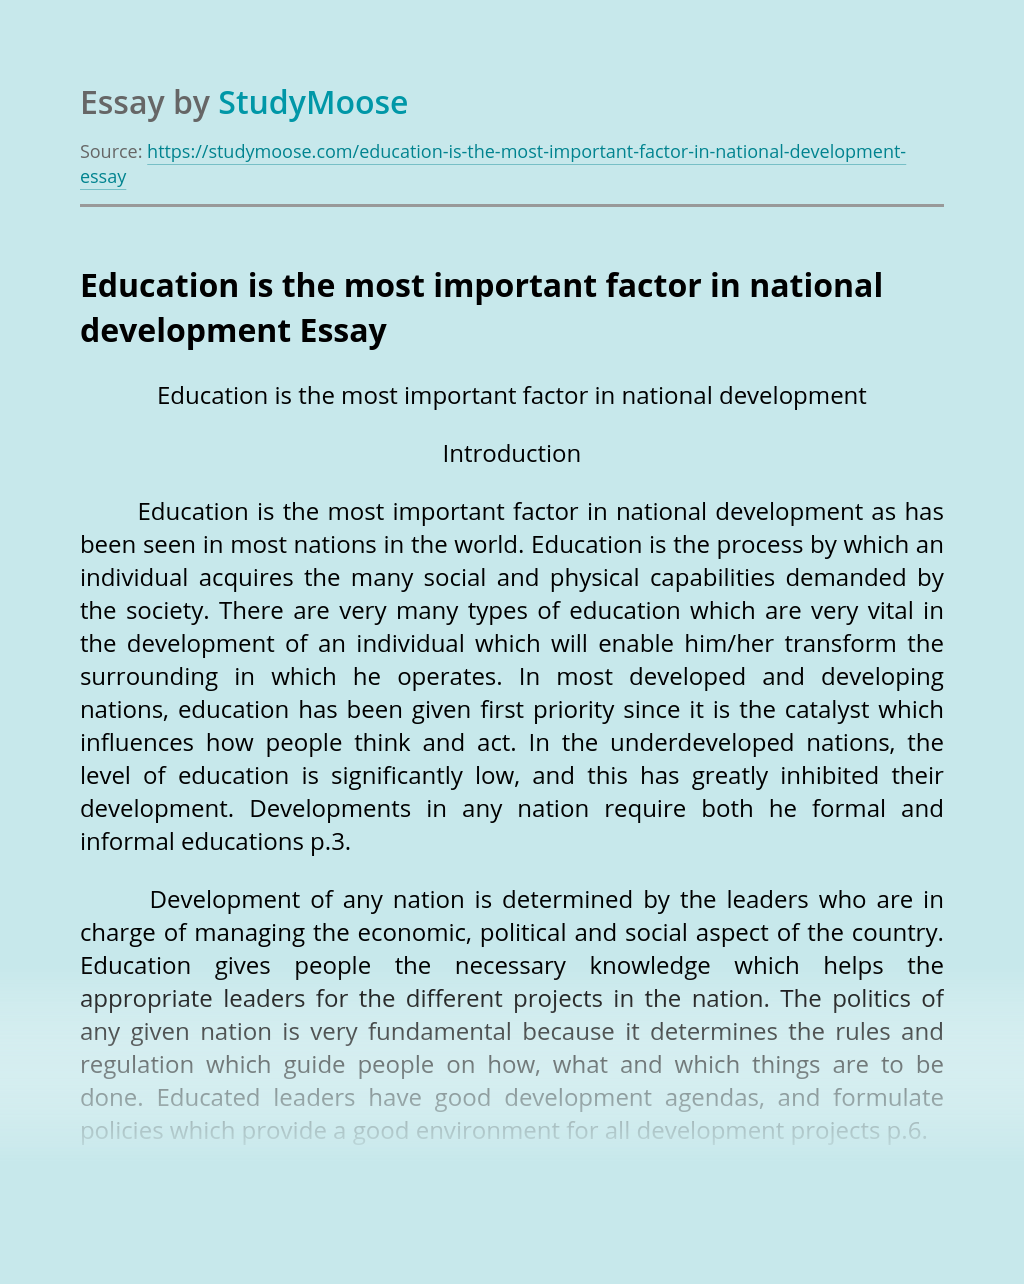 Education is the most important factor in national development